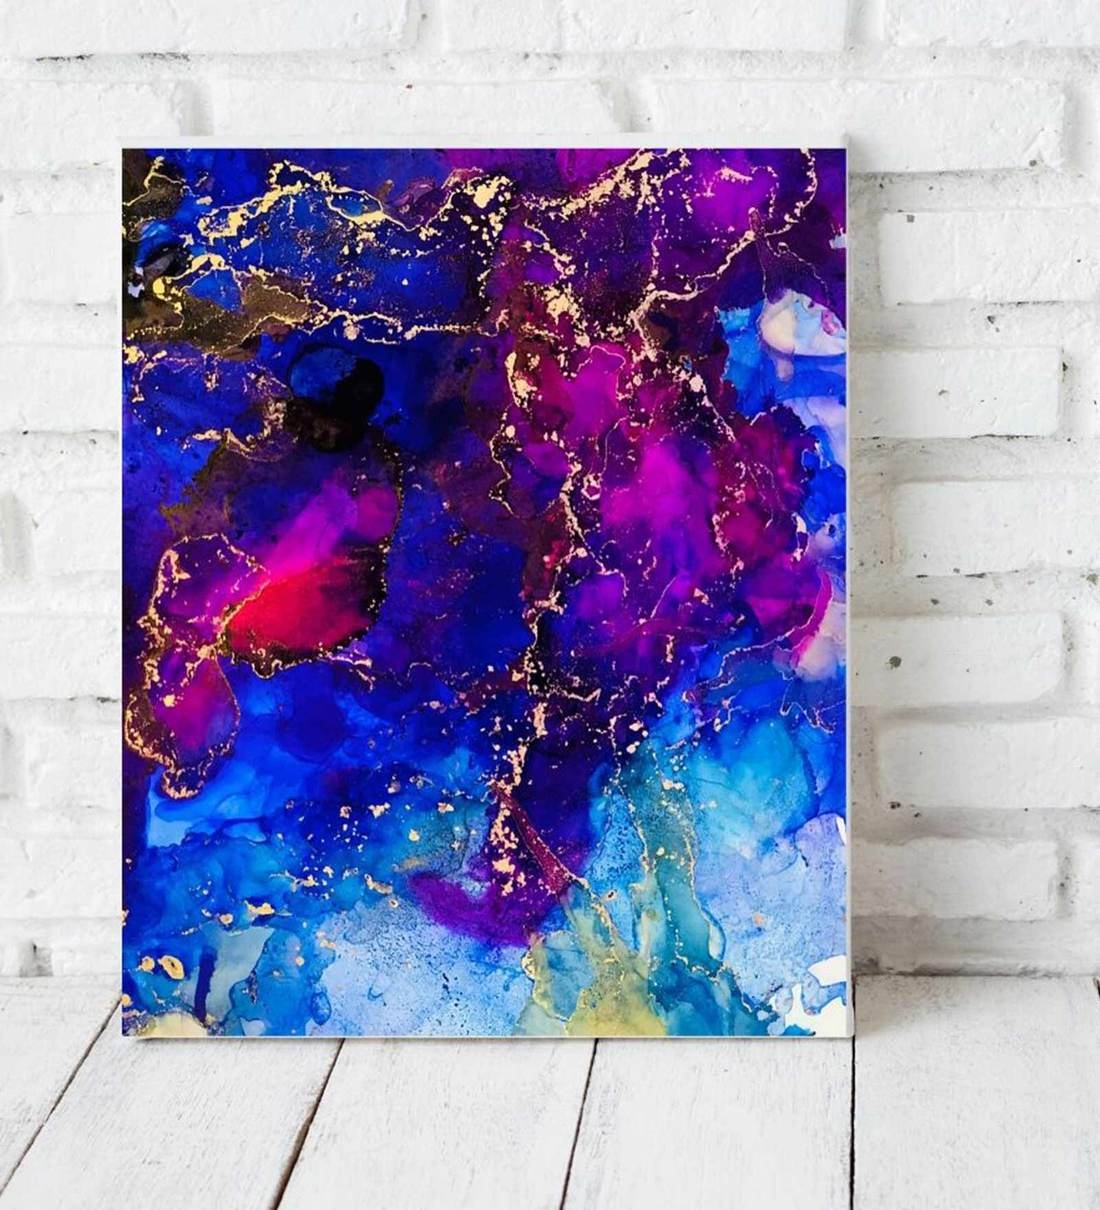 Buy Somewhere In The Sky Art Print In Blue By Wonderbox Online Abstract Art Prints Art Prints Home Decor Pepperfry Product